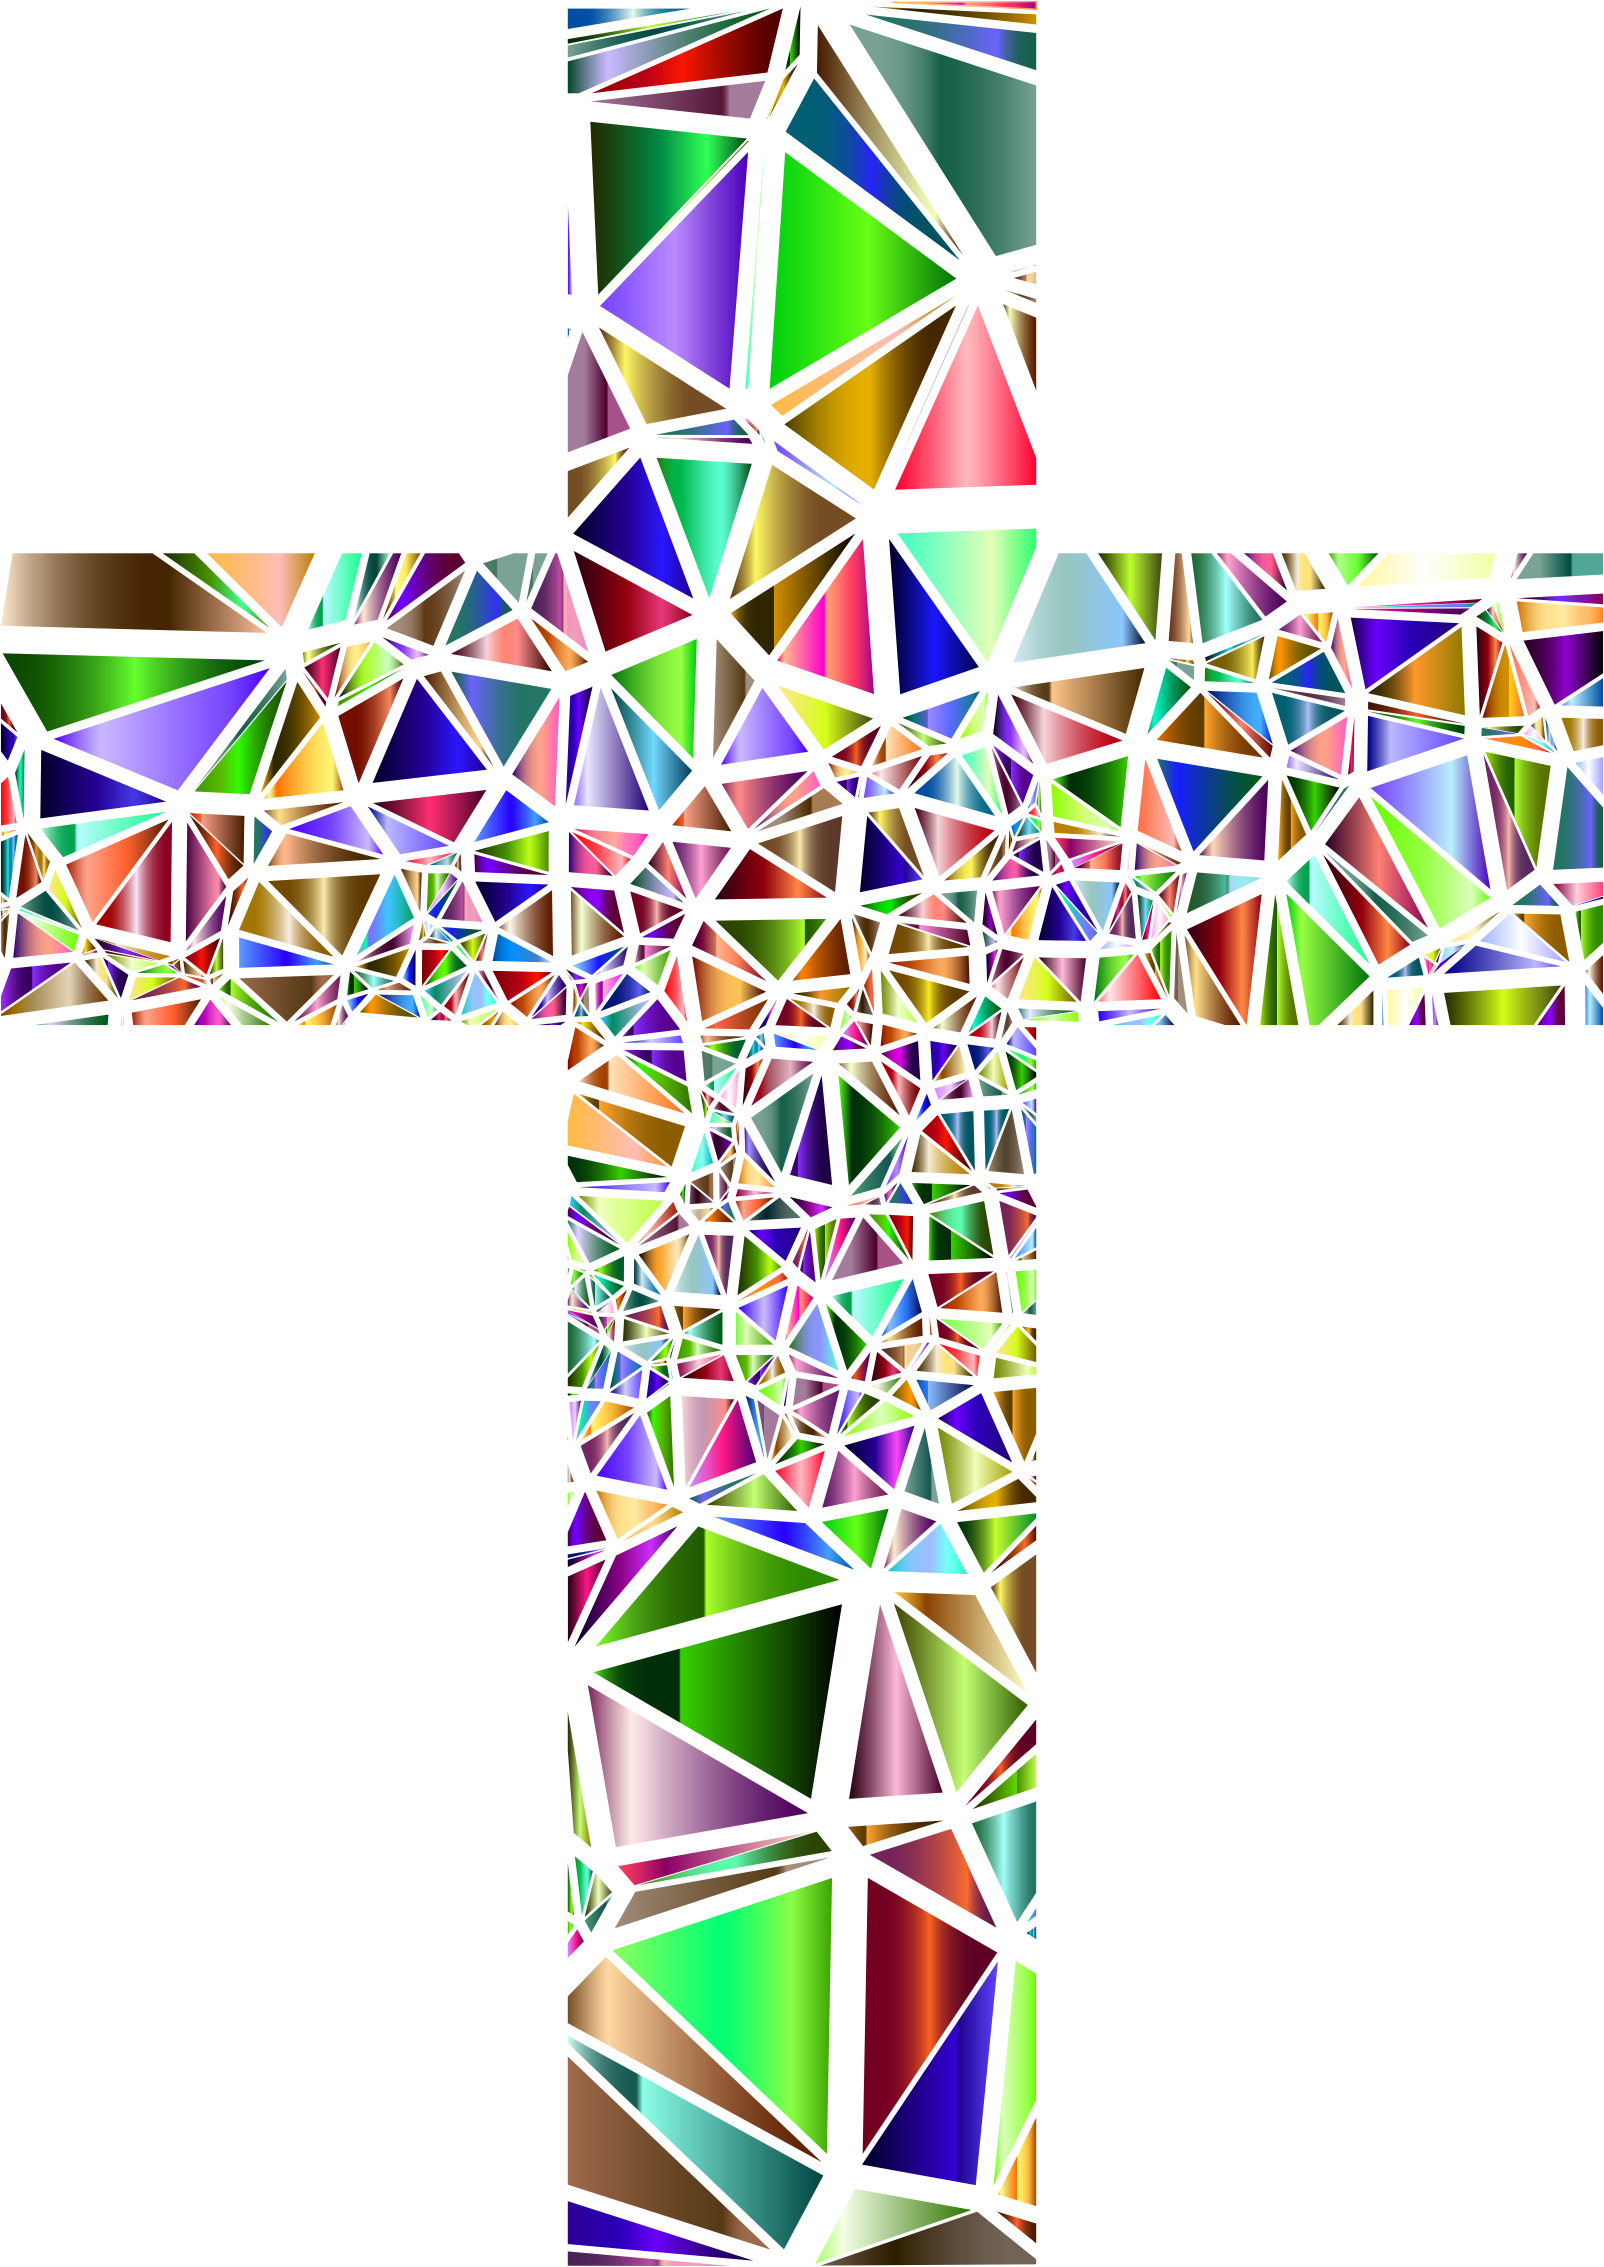 Low Poly Stained Glass Cross 5 No Background by GDJ